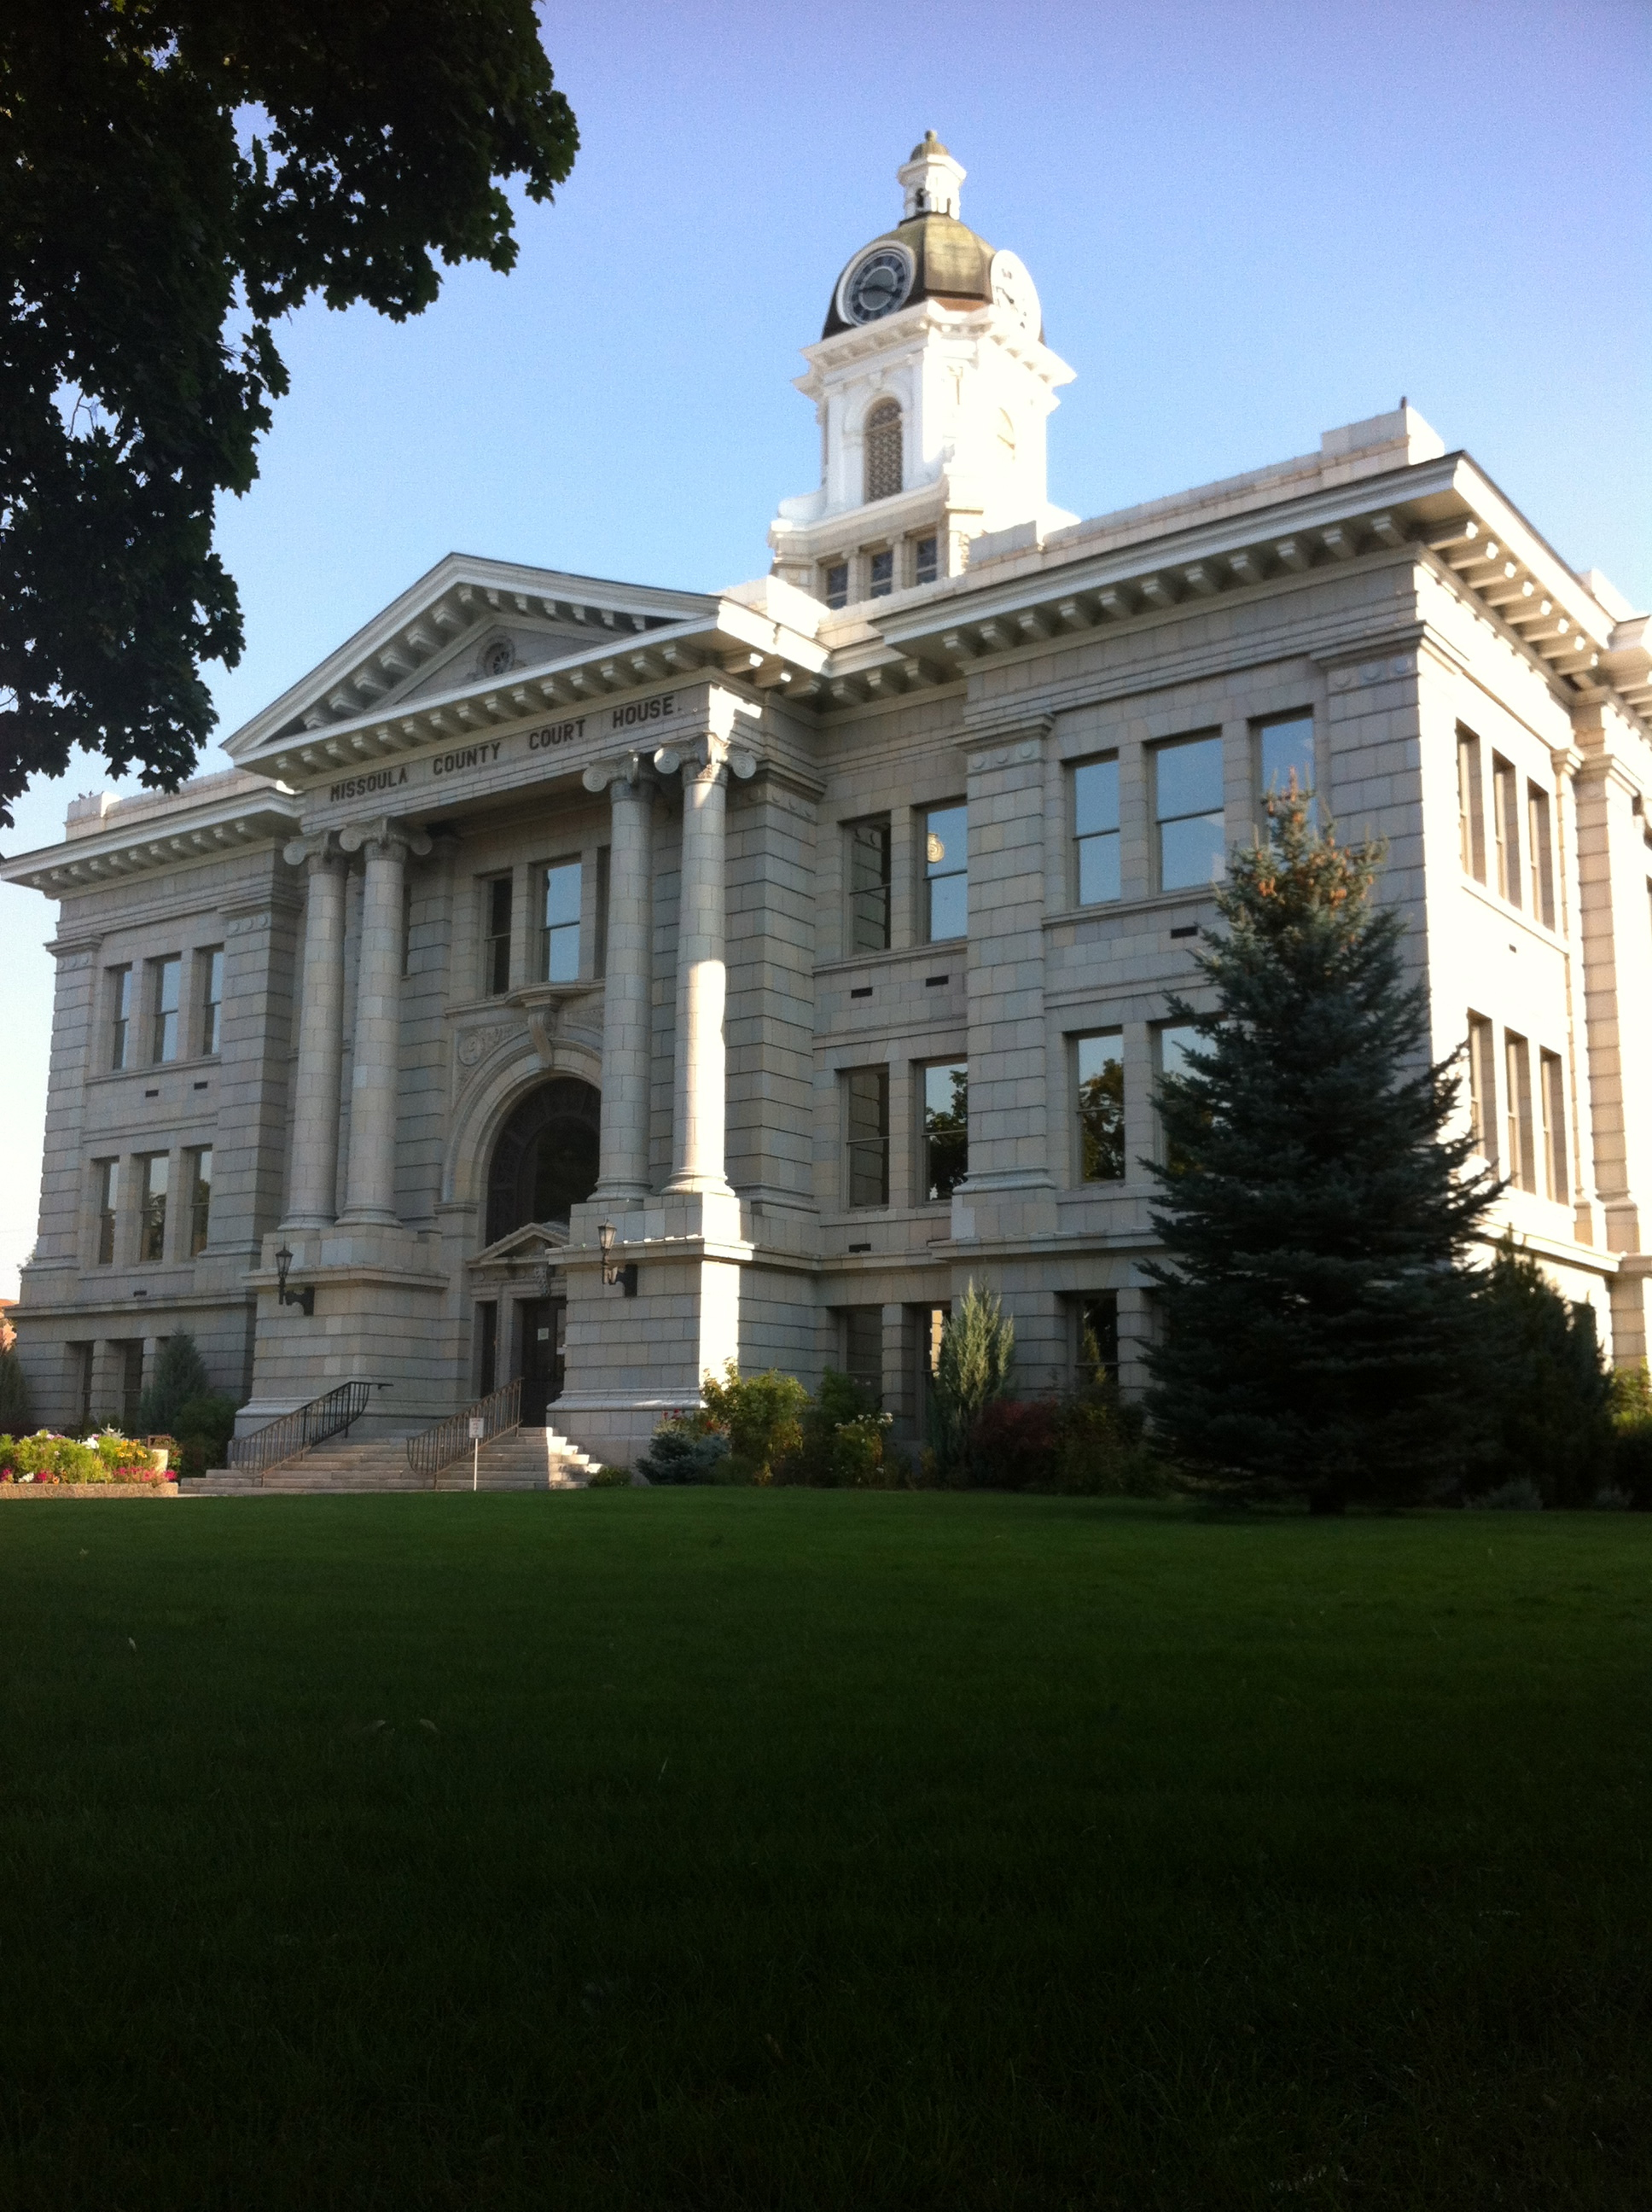 JM Engineering Missoula County Courthouse HVAC system